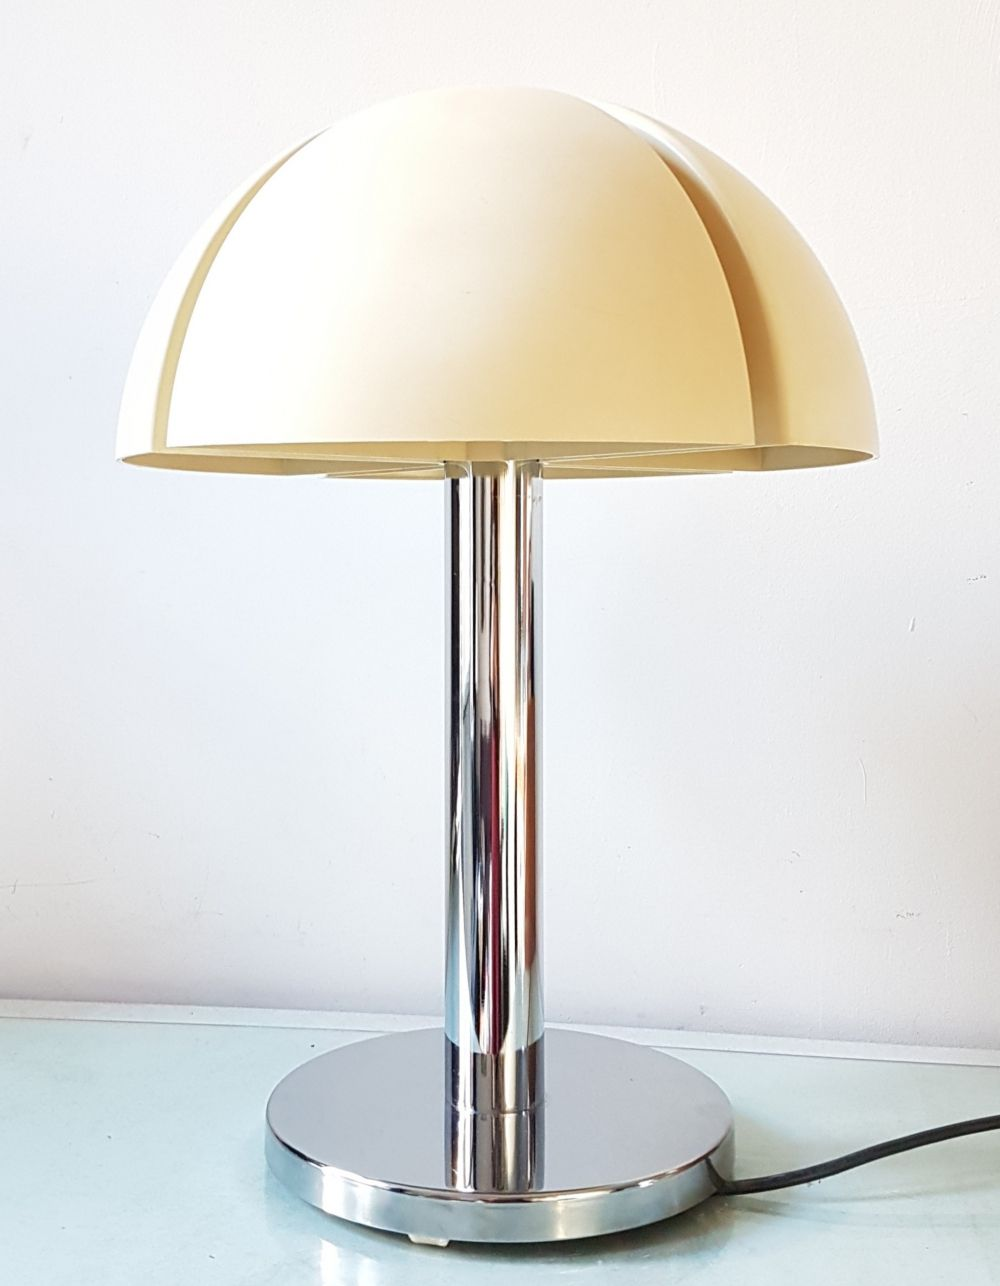 For Sale Octavo Table Lamp By Raak Amsterdam 1970s In 2020 Table Lamp Lamp Table